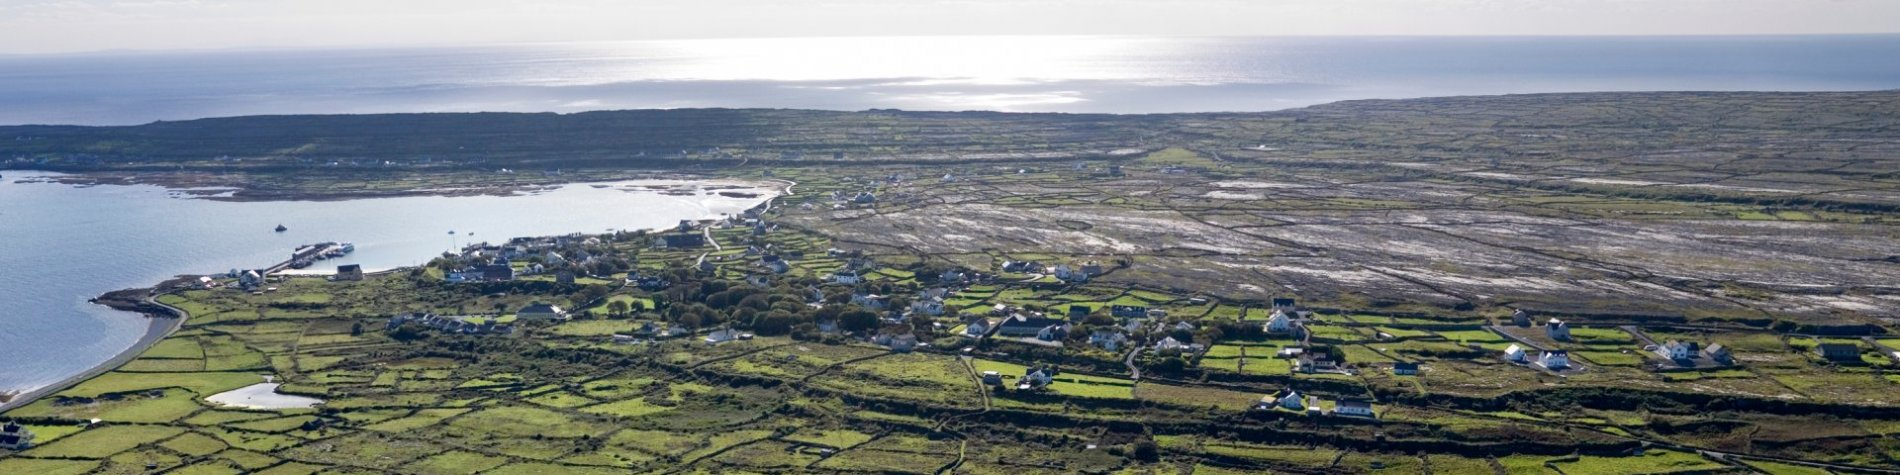 Inis Mhor Landscape on a day trip - Aran Islands